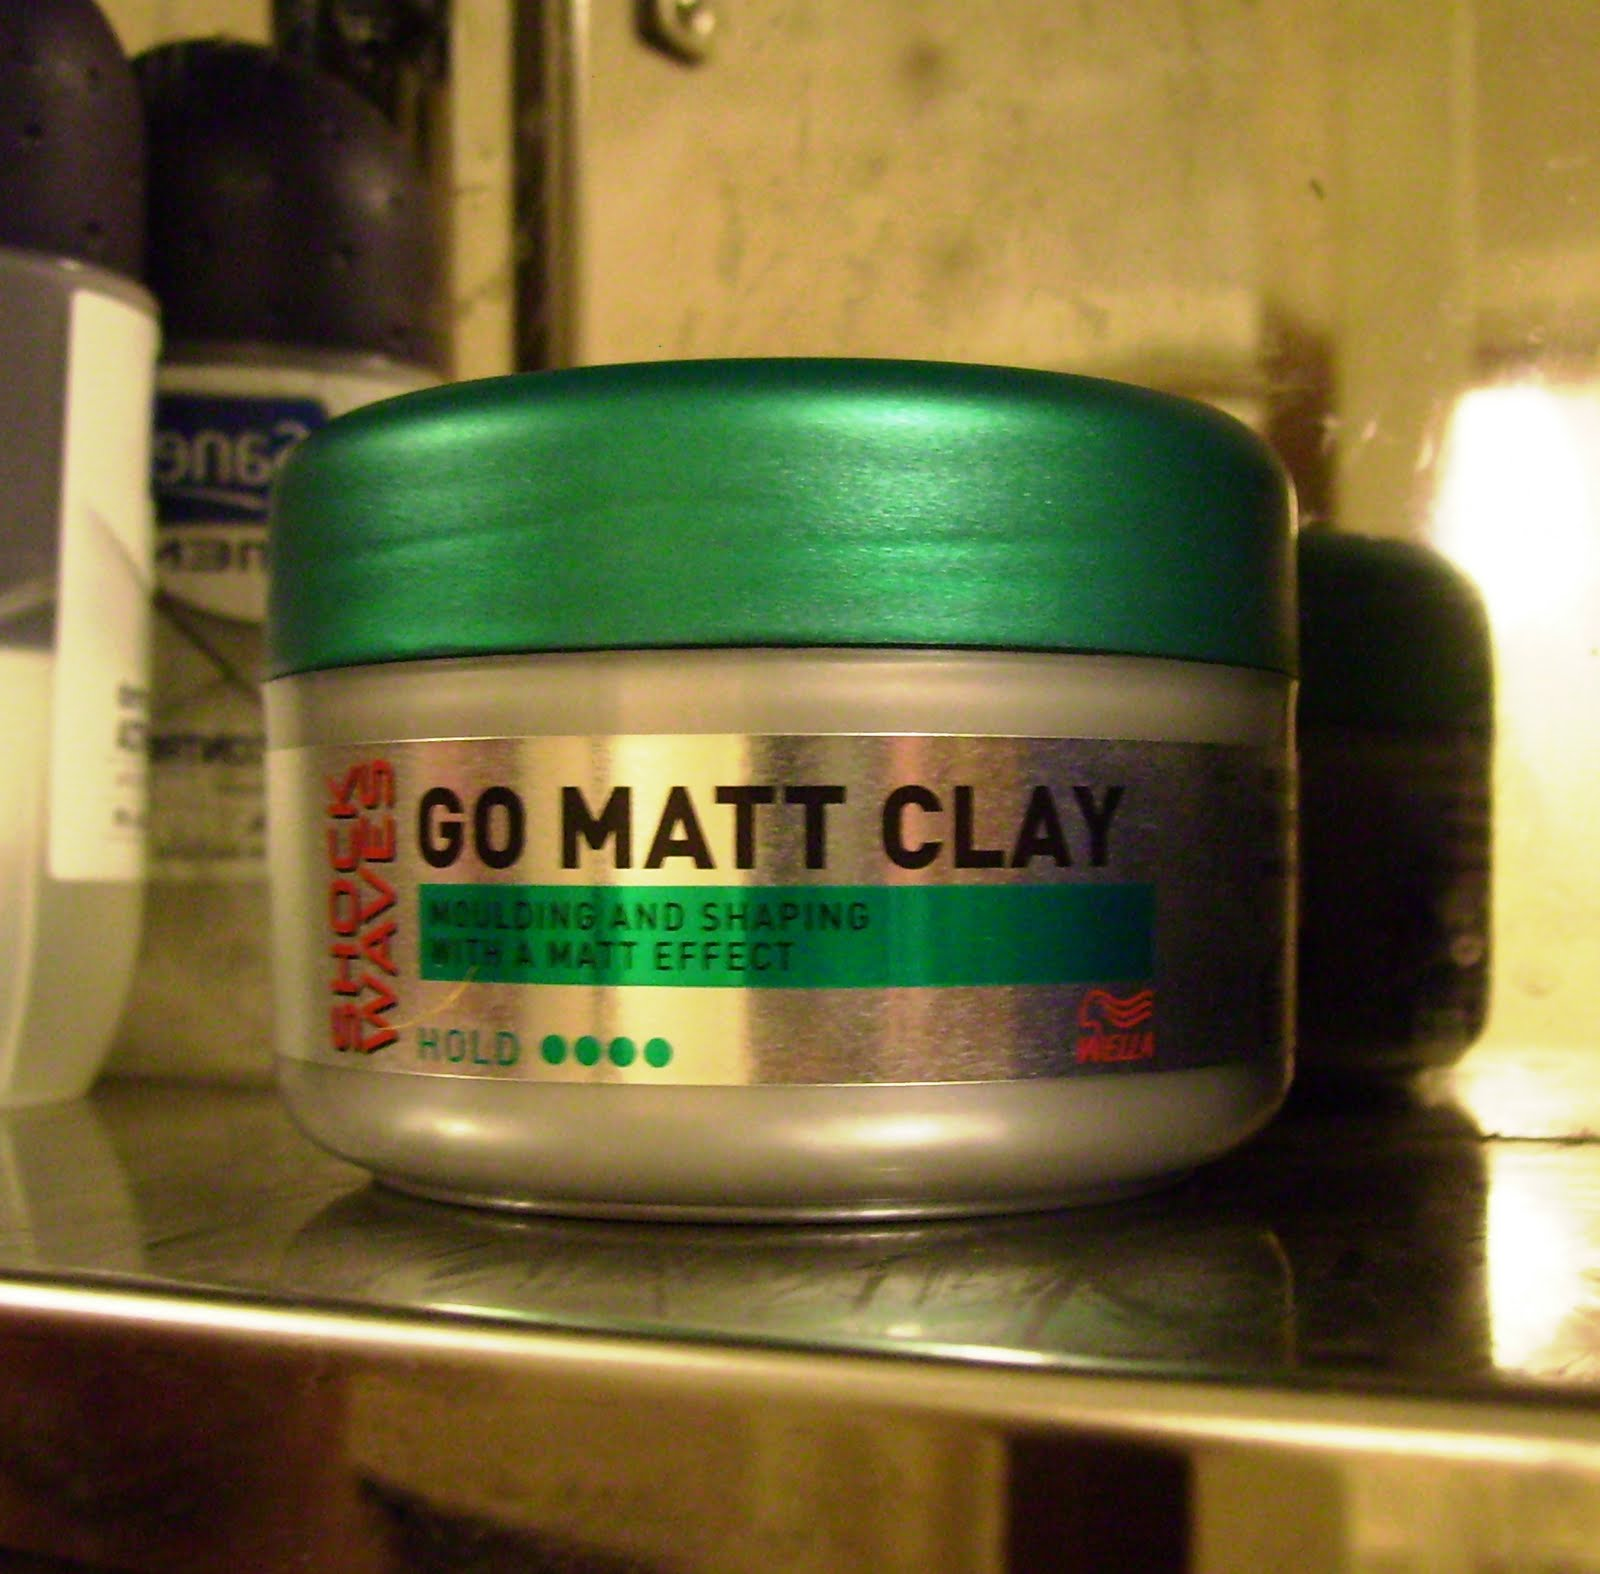 I Ve Started To Read The Label On My Hair Junk As A Motivational Message For Some Guy Called Matt Clay Man Have Never Met And Who Isn T Me